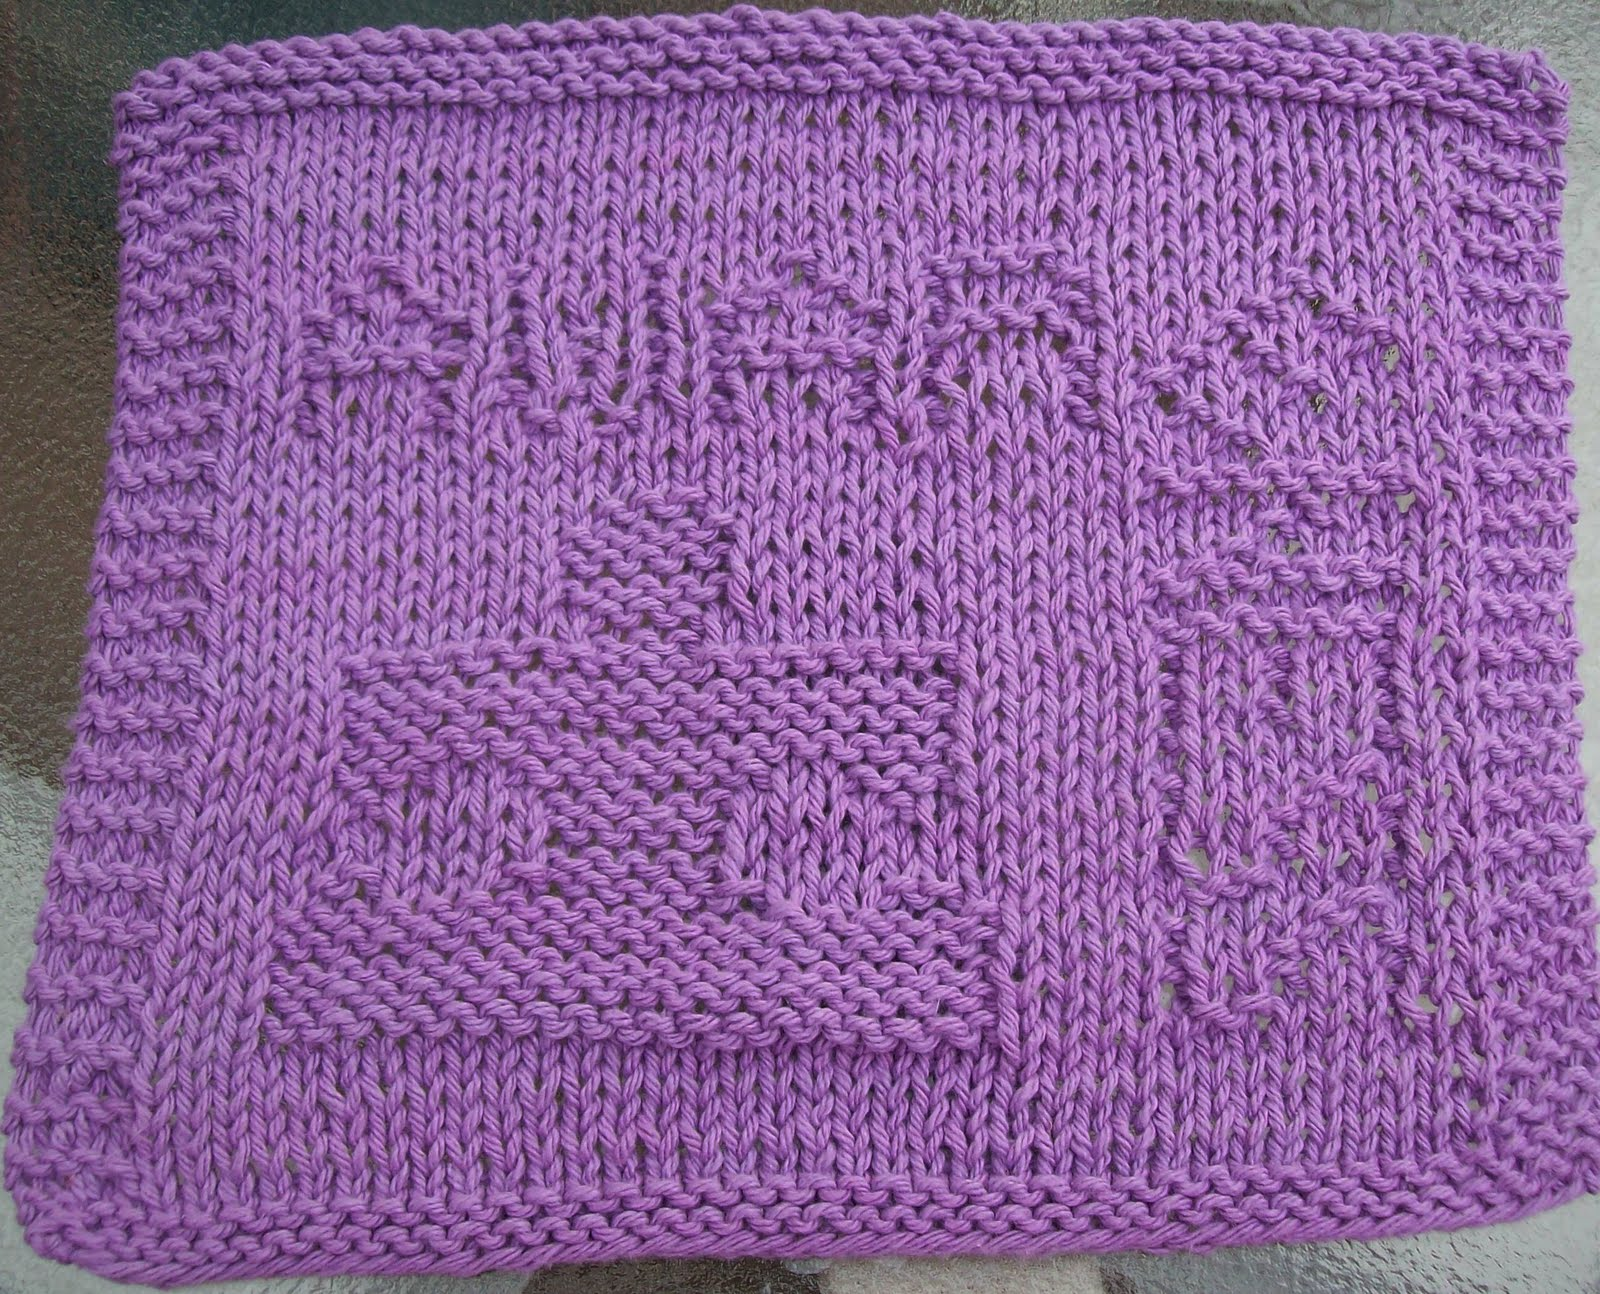 Knit Patterns For Dishcloths Free : DigKnitty Designs: Autism Awareness * Free* Knit Dishcloth Pattern